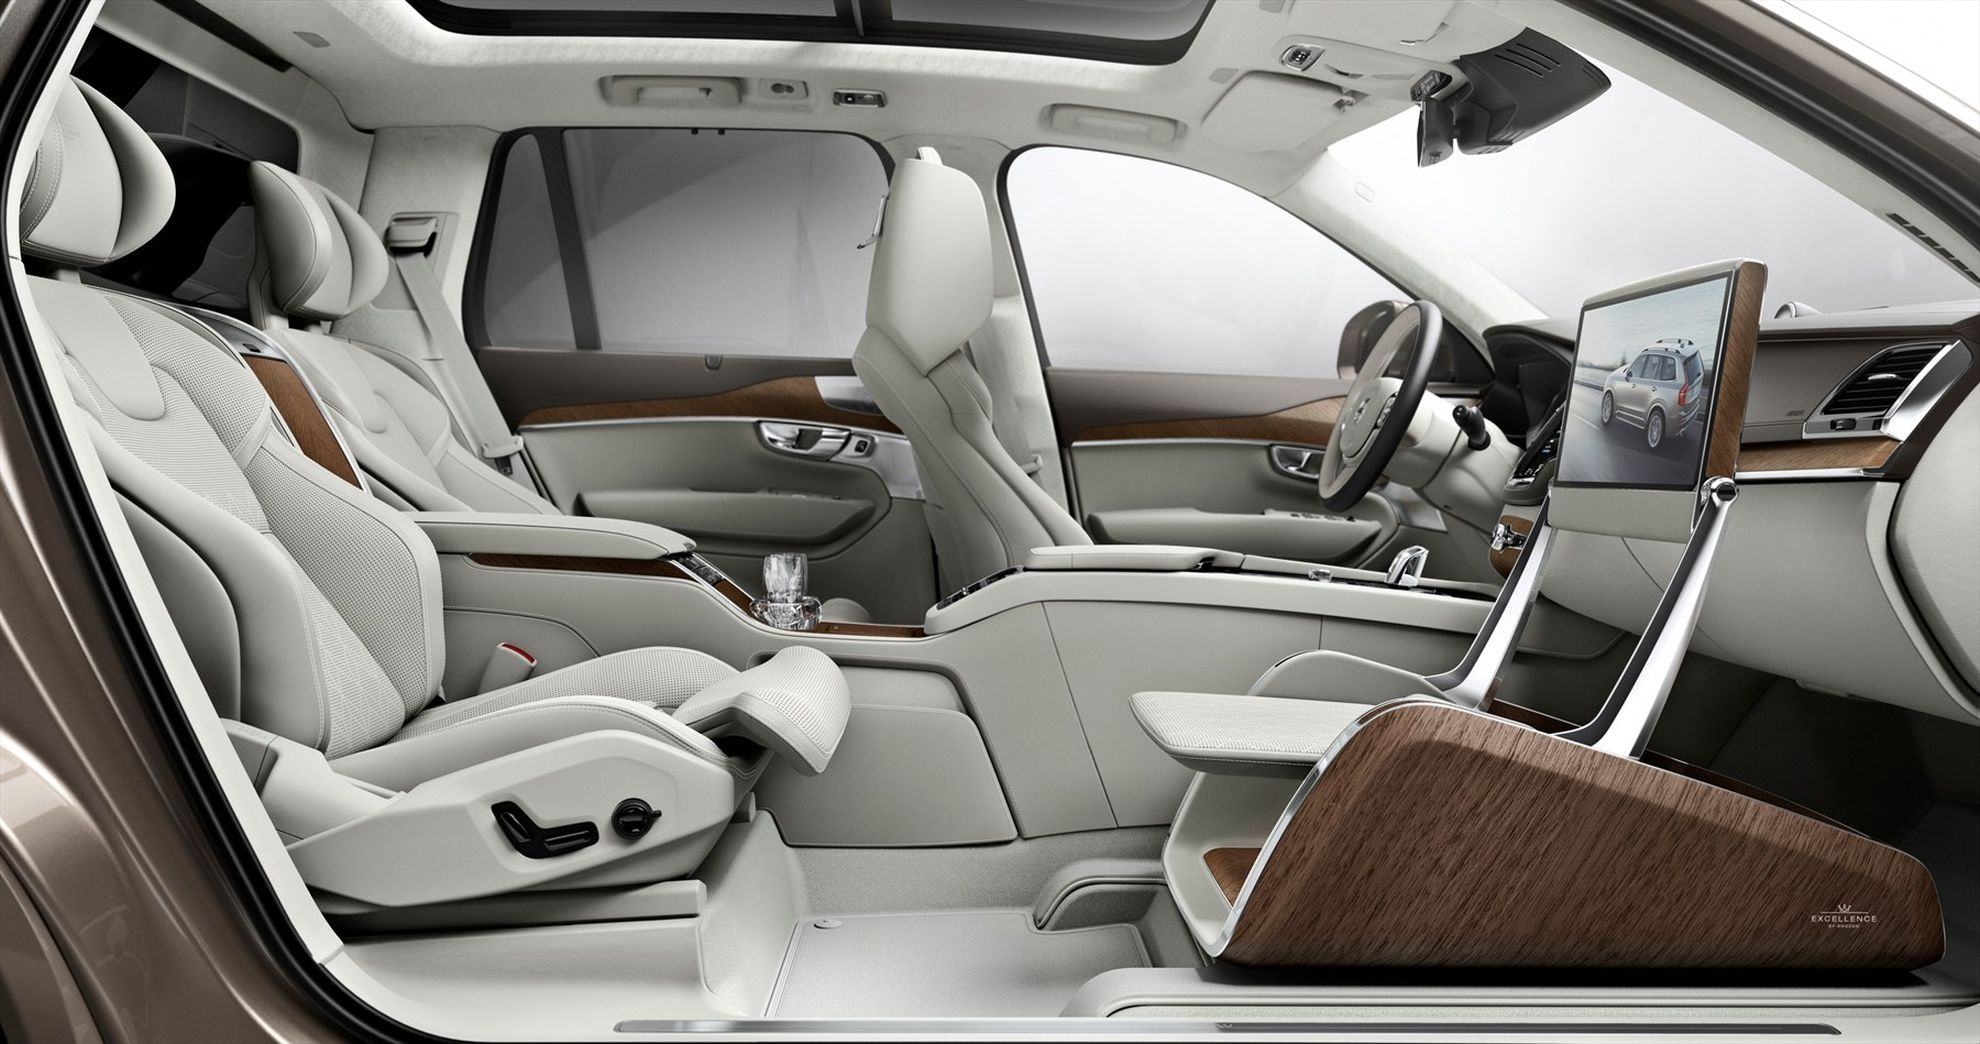 Volvo-Cars-takes-luxury-to-a-new-level-with-its-Lounge-Console-unveiled-in-Shanghai-2